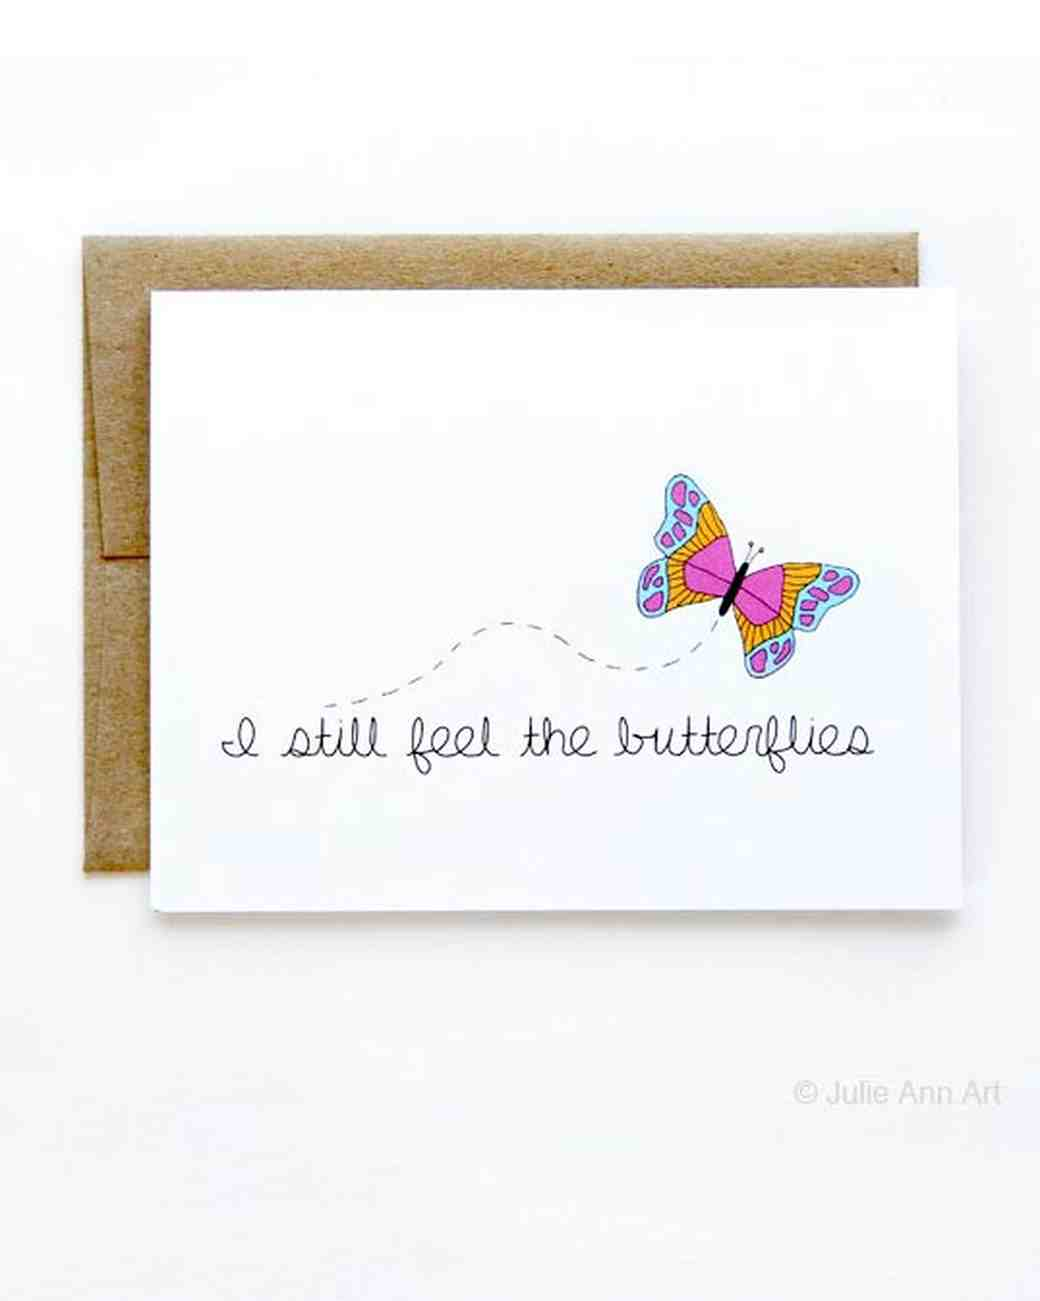 vday-cards-we-love-julie-ann-art-feel-the-butterflies-0216.jpg